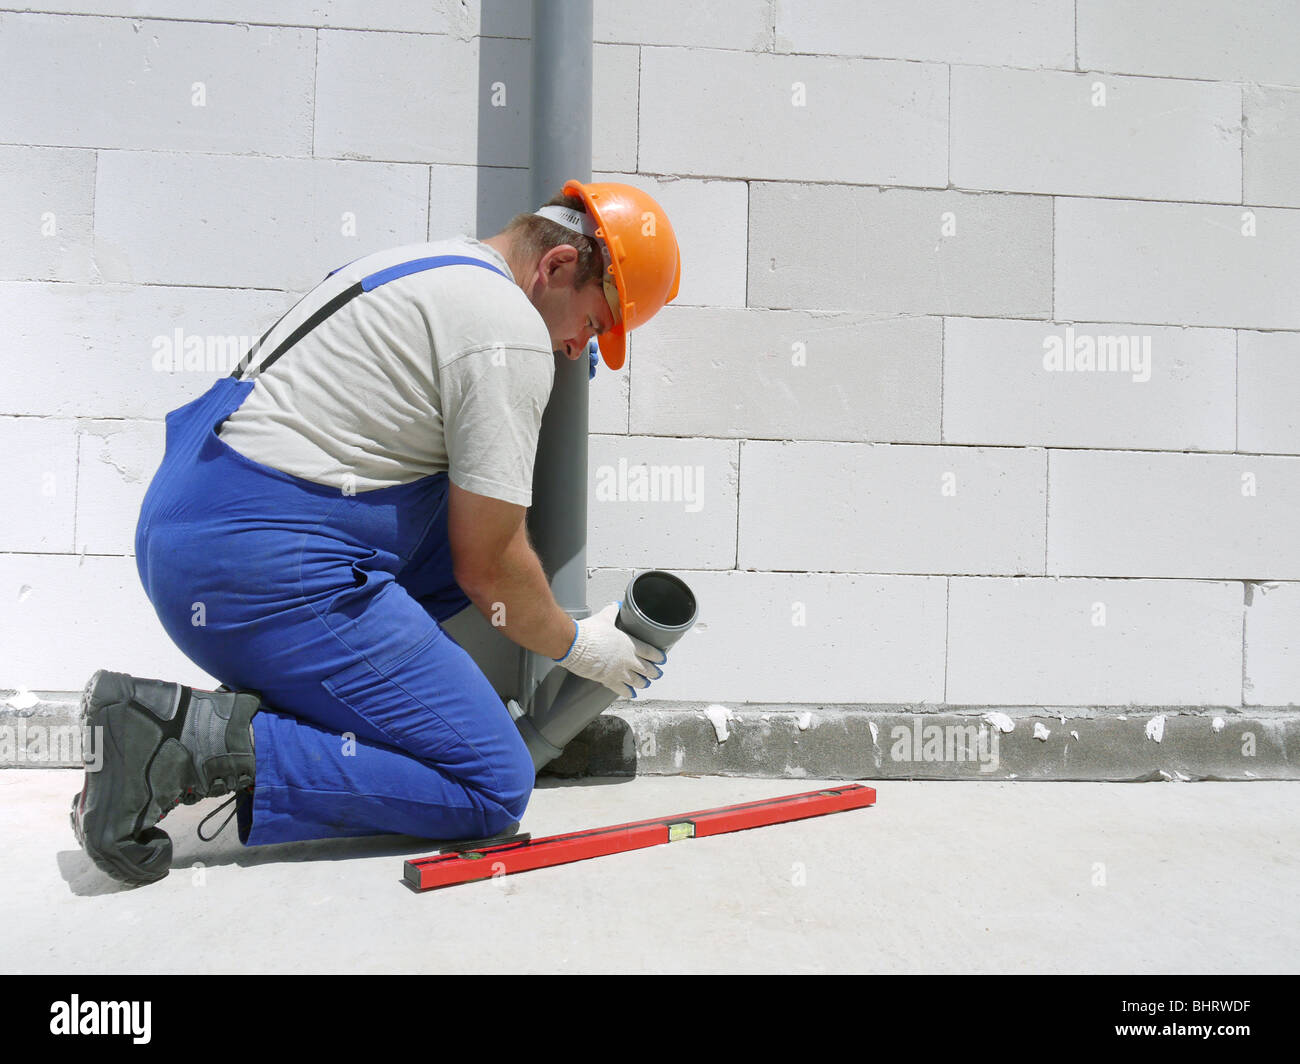 Plumber fitting pvc sewage pipes inside newly built house - Stock Image